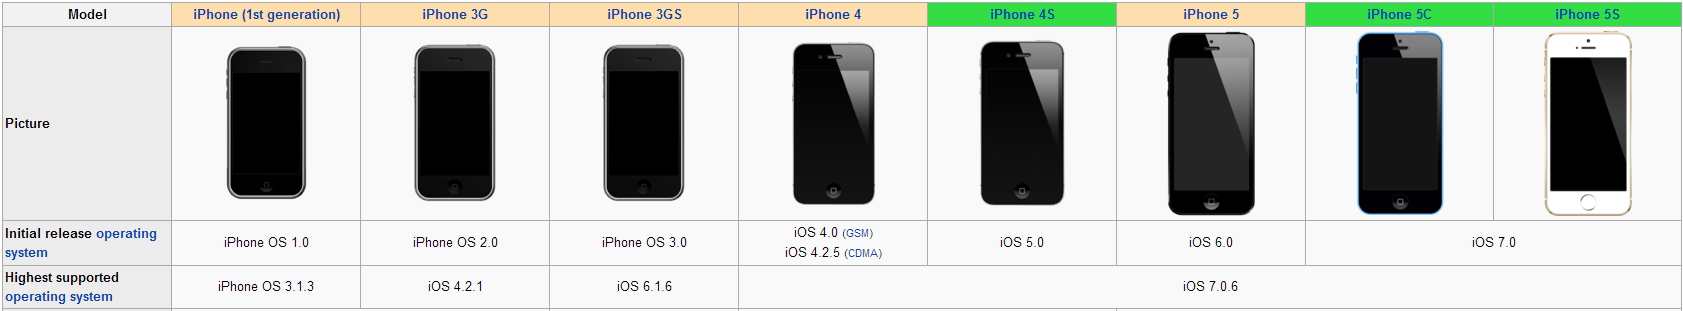 iphone-vs-iosversion